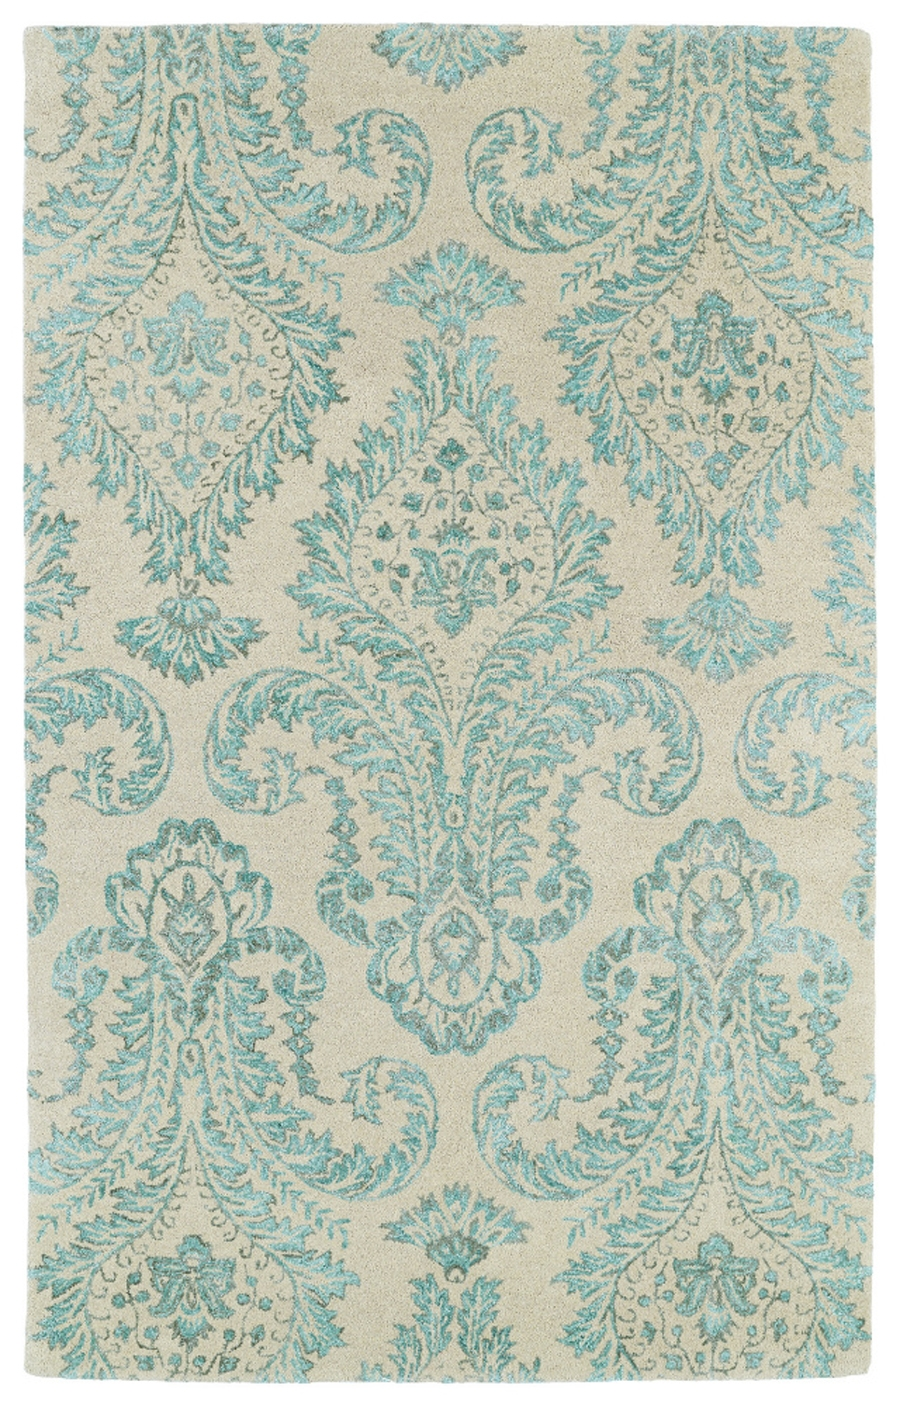 Kaleen divine div06 78 turquoise area rug for Turquoise area rug